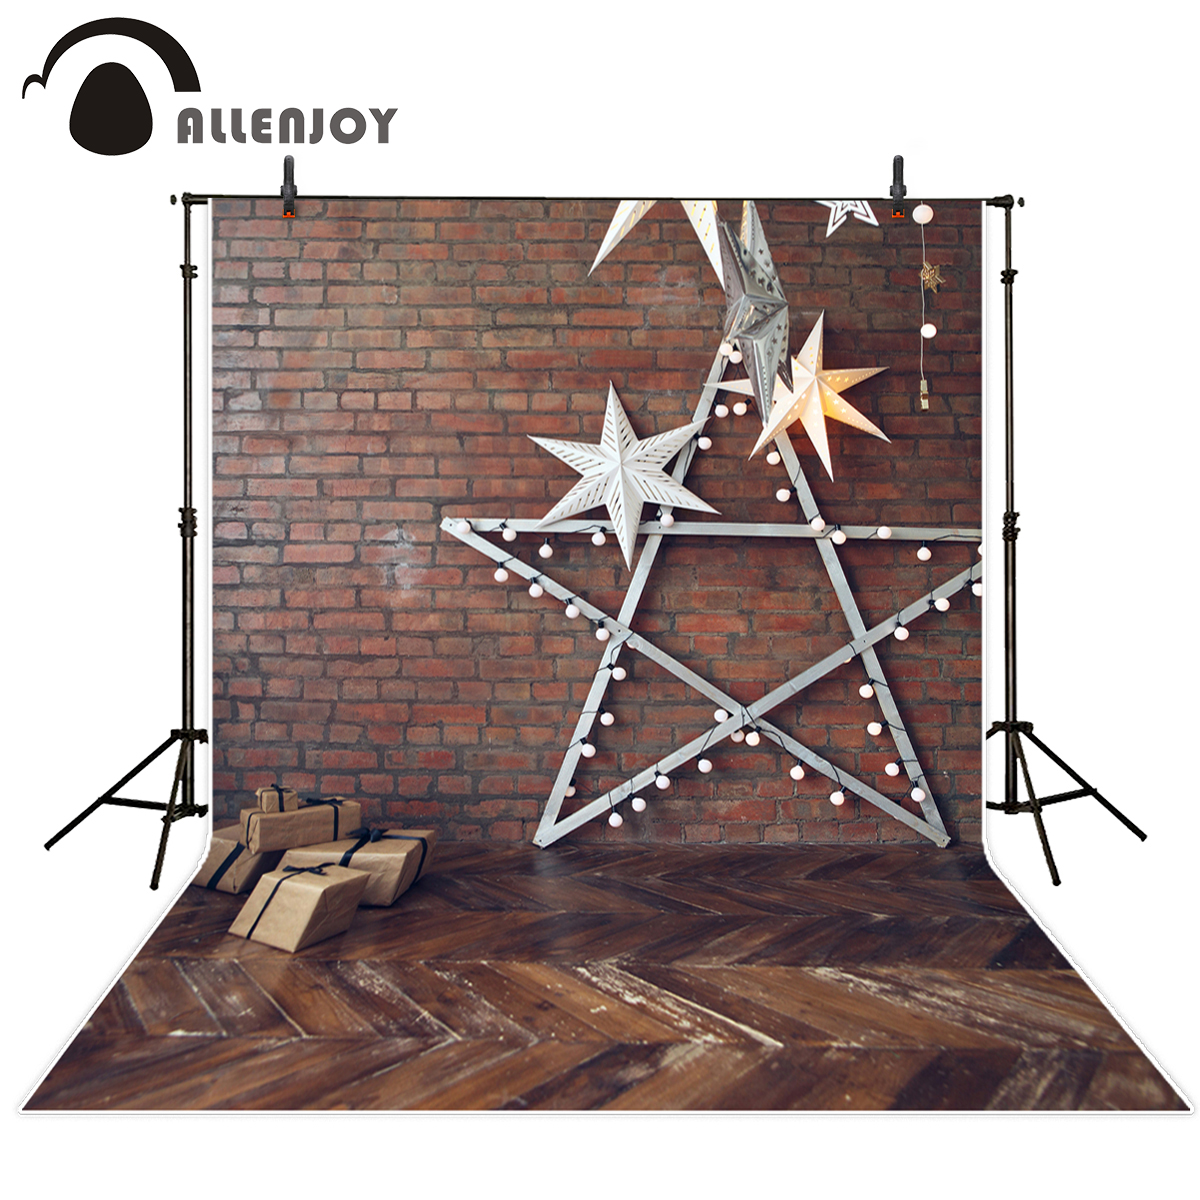 Allenjoy photography backdrops brick wall snowflake star wood floor decor backgrounds for photo studio photo background vinyl voile gossamer nostalgic pattern shawl scarf